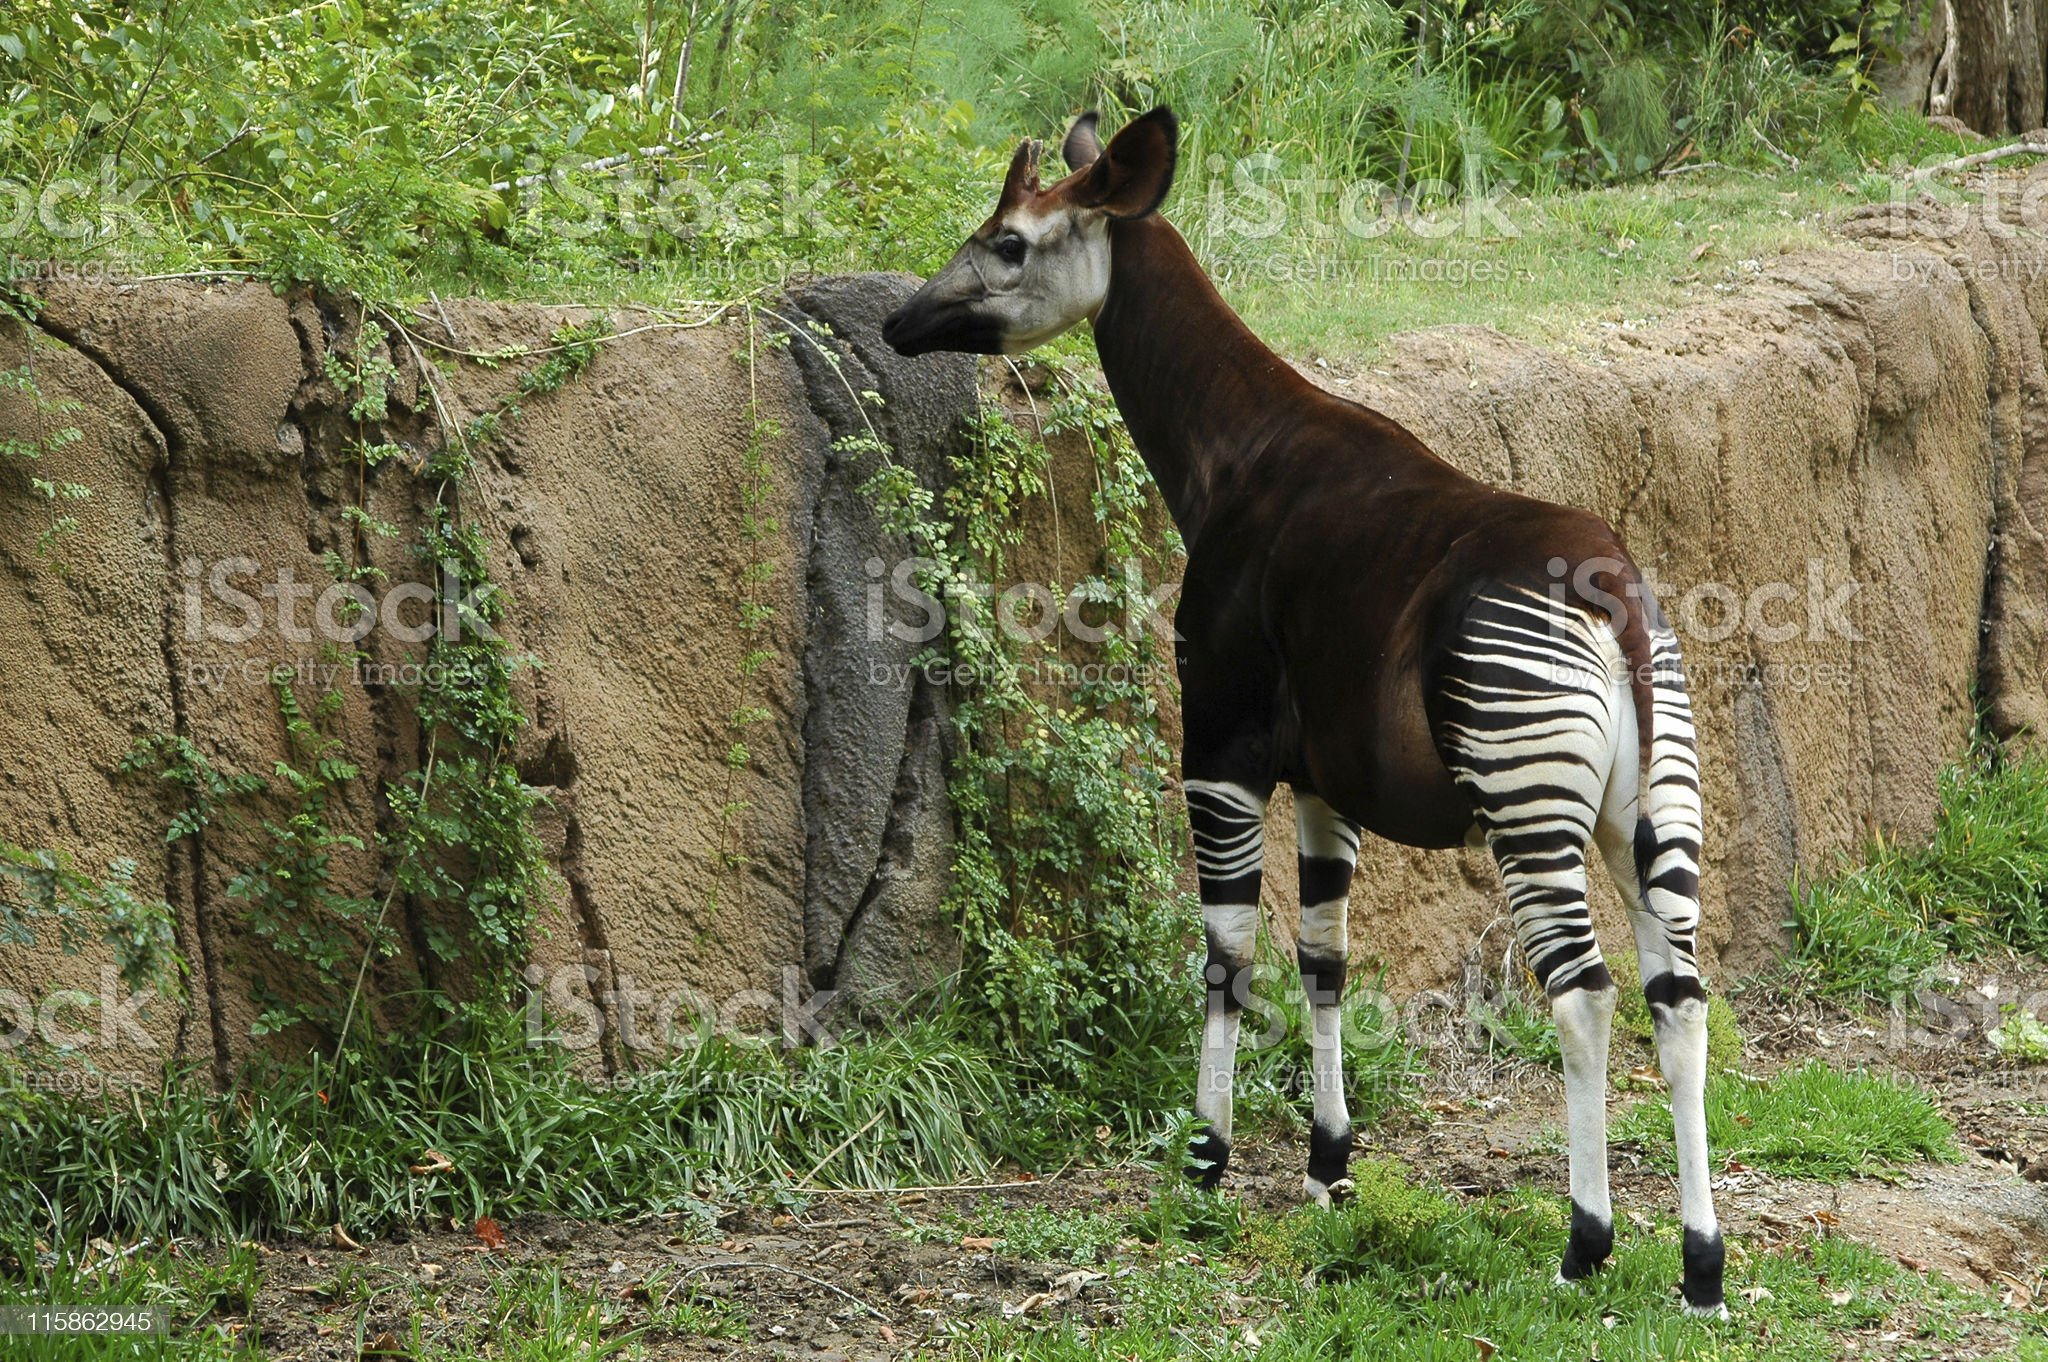 An okapi stands grazing at a rock wall. royalty-free stock photo